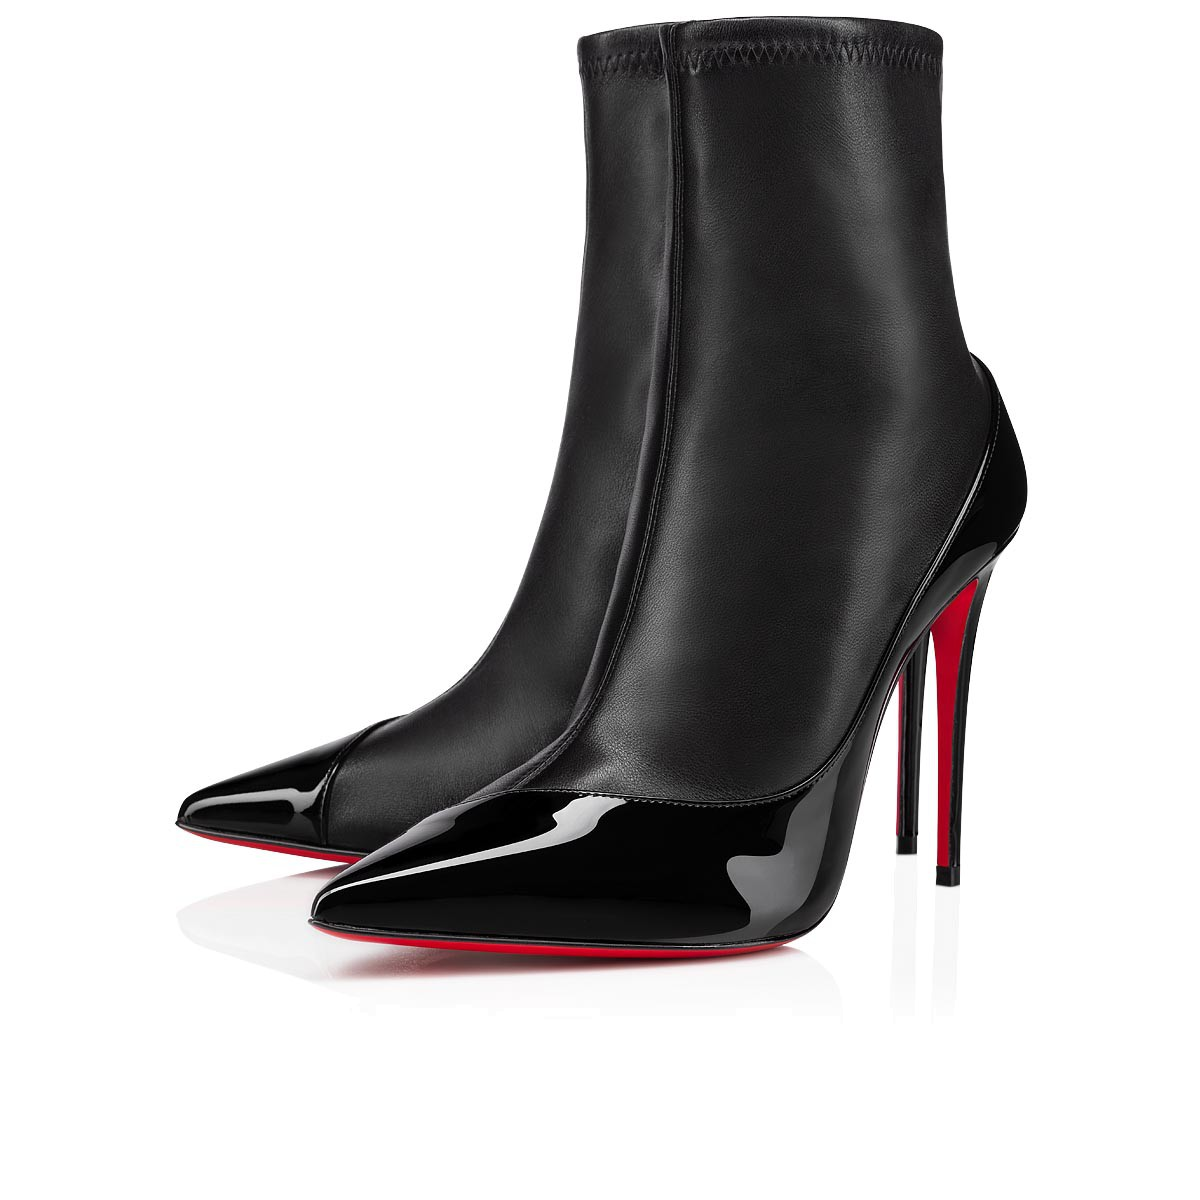 Shoes - Bibooty - Christian Louboutin